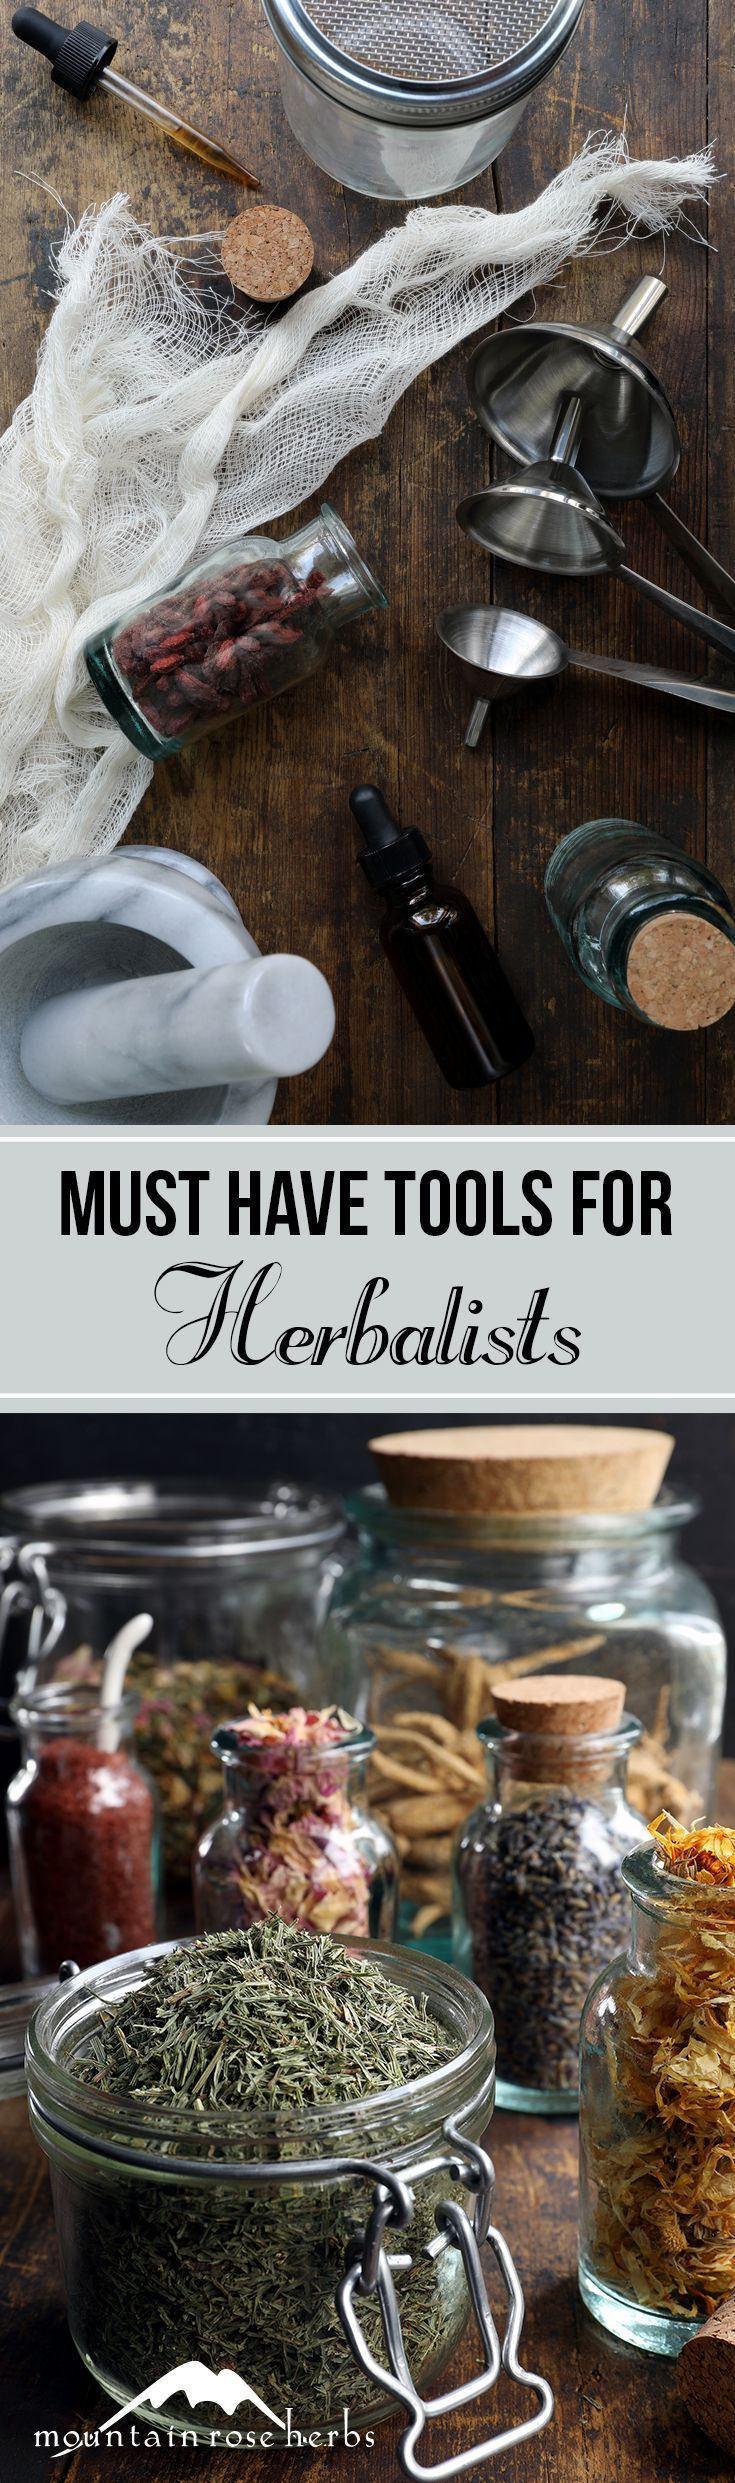 Must-have tools for starting your herbalism journey | Mountain Rose Herbs blog